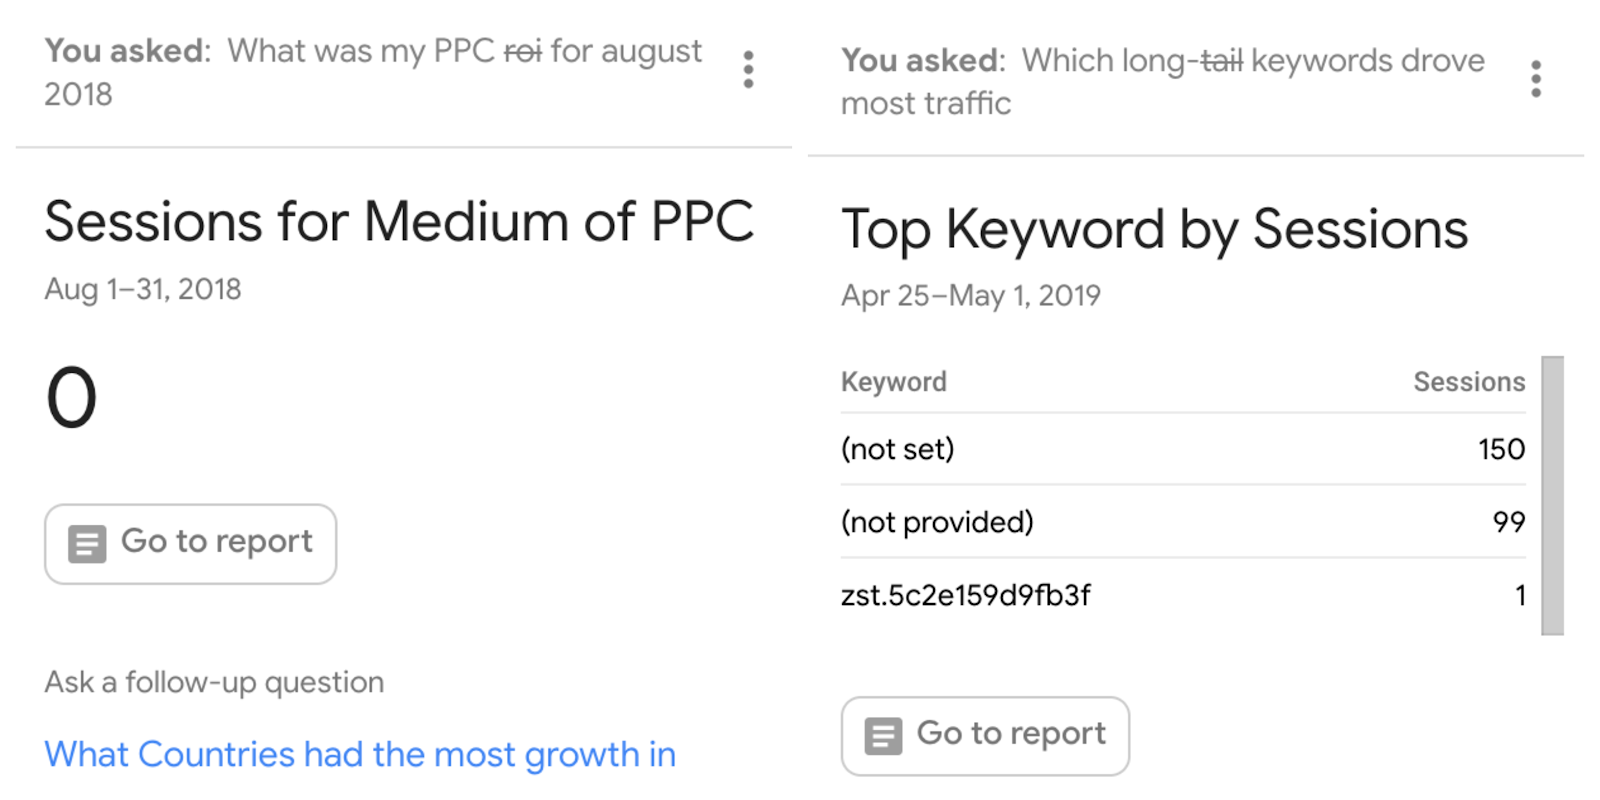 analytics intelligence doesn't understand roi or long-tail keywords.